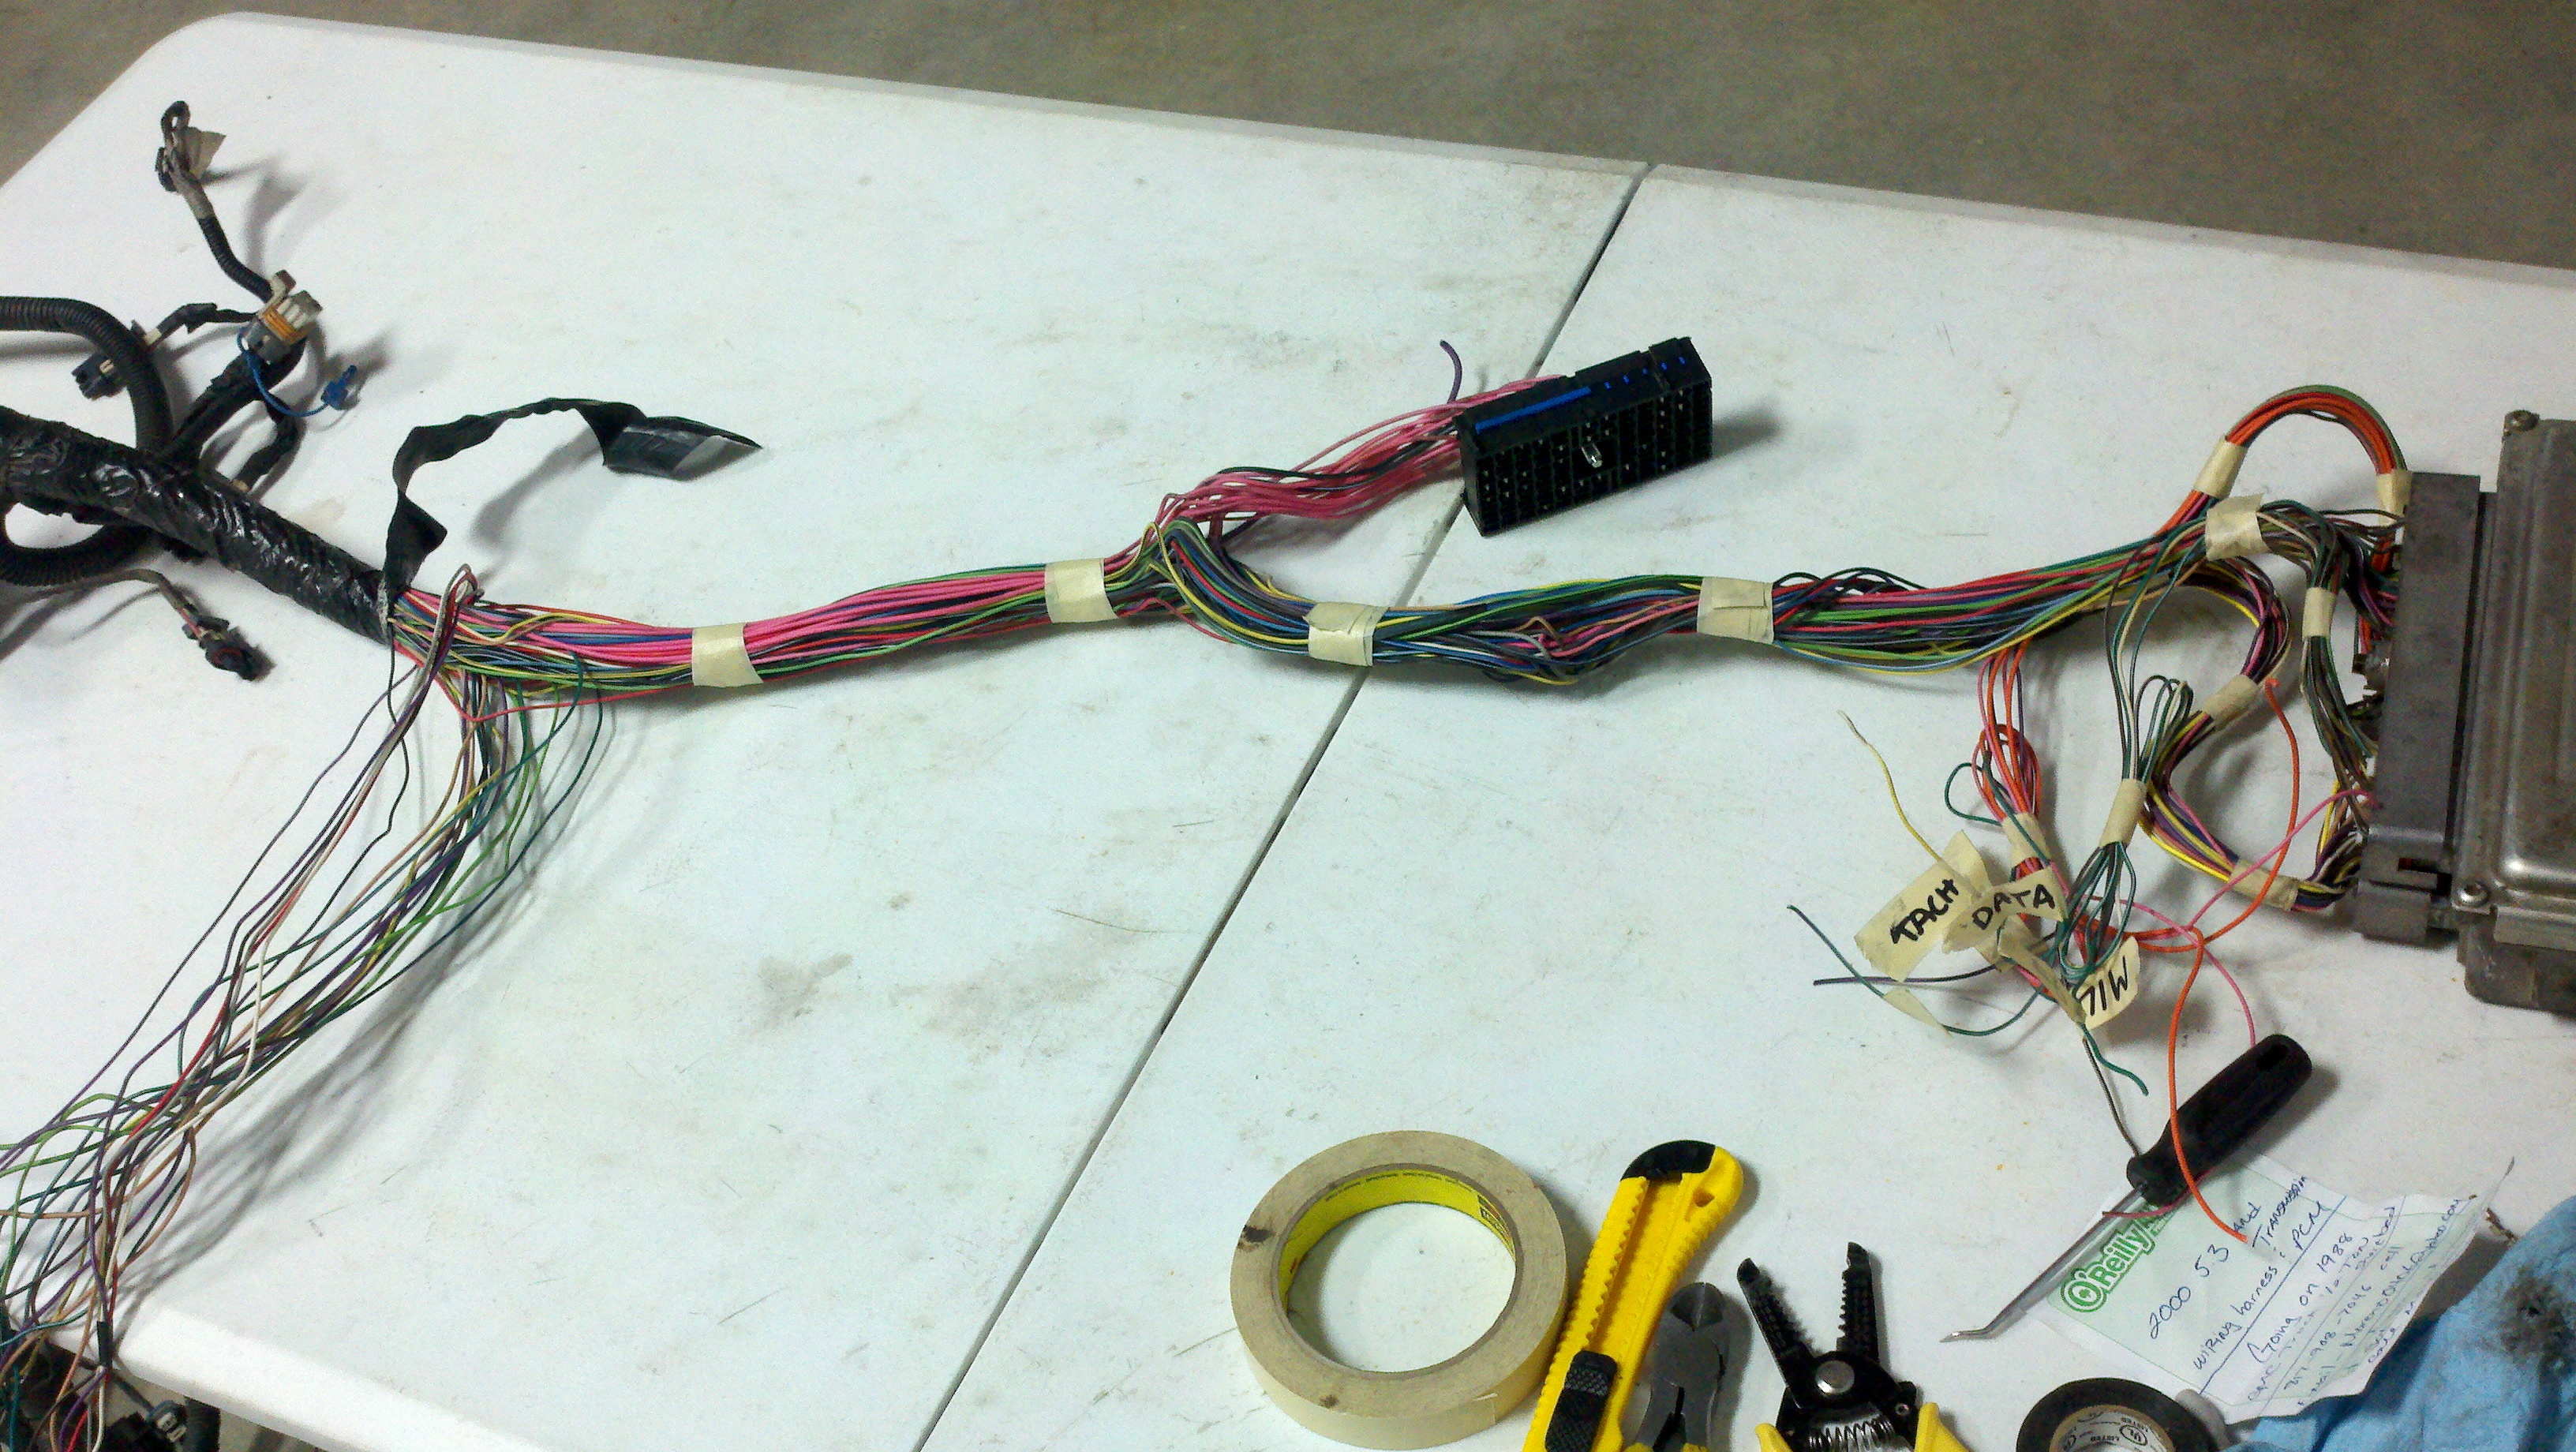 Vortec 48 53 60 Wiring Harness Info Standalone Ls1 And Continue With The Masking Tape To Hold In Its Stock Shape